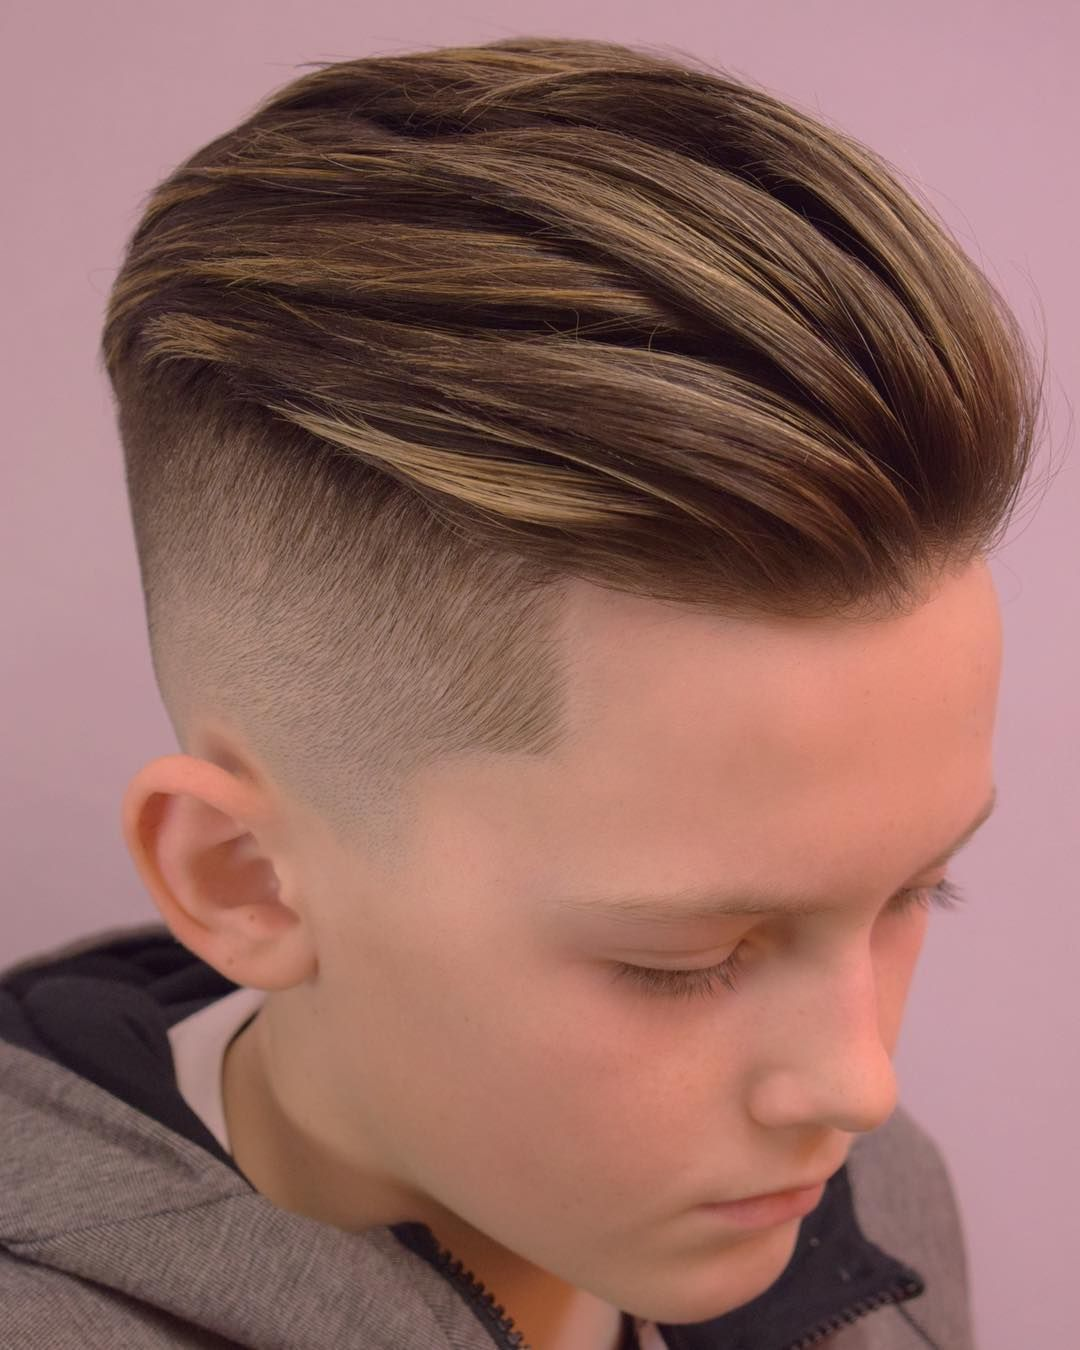 Boys Hair Styles Gorgeous Undercuts Hairstyles Boys  Textured Hairstyles & Haircuts